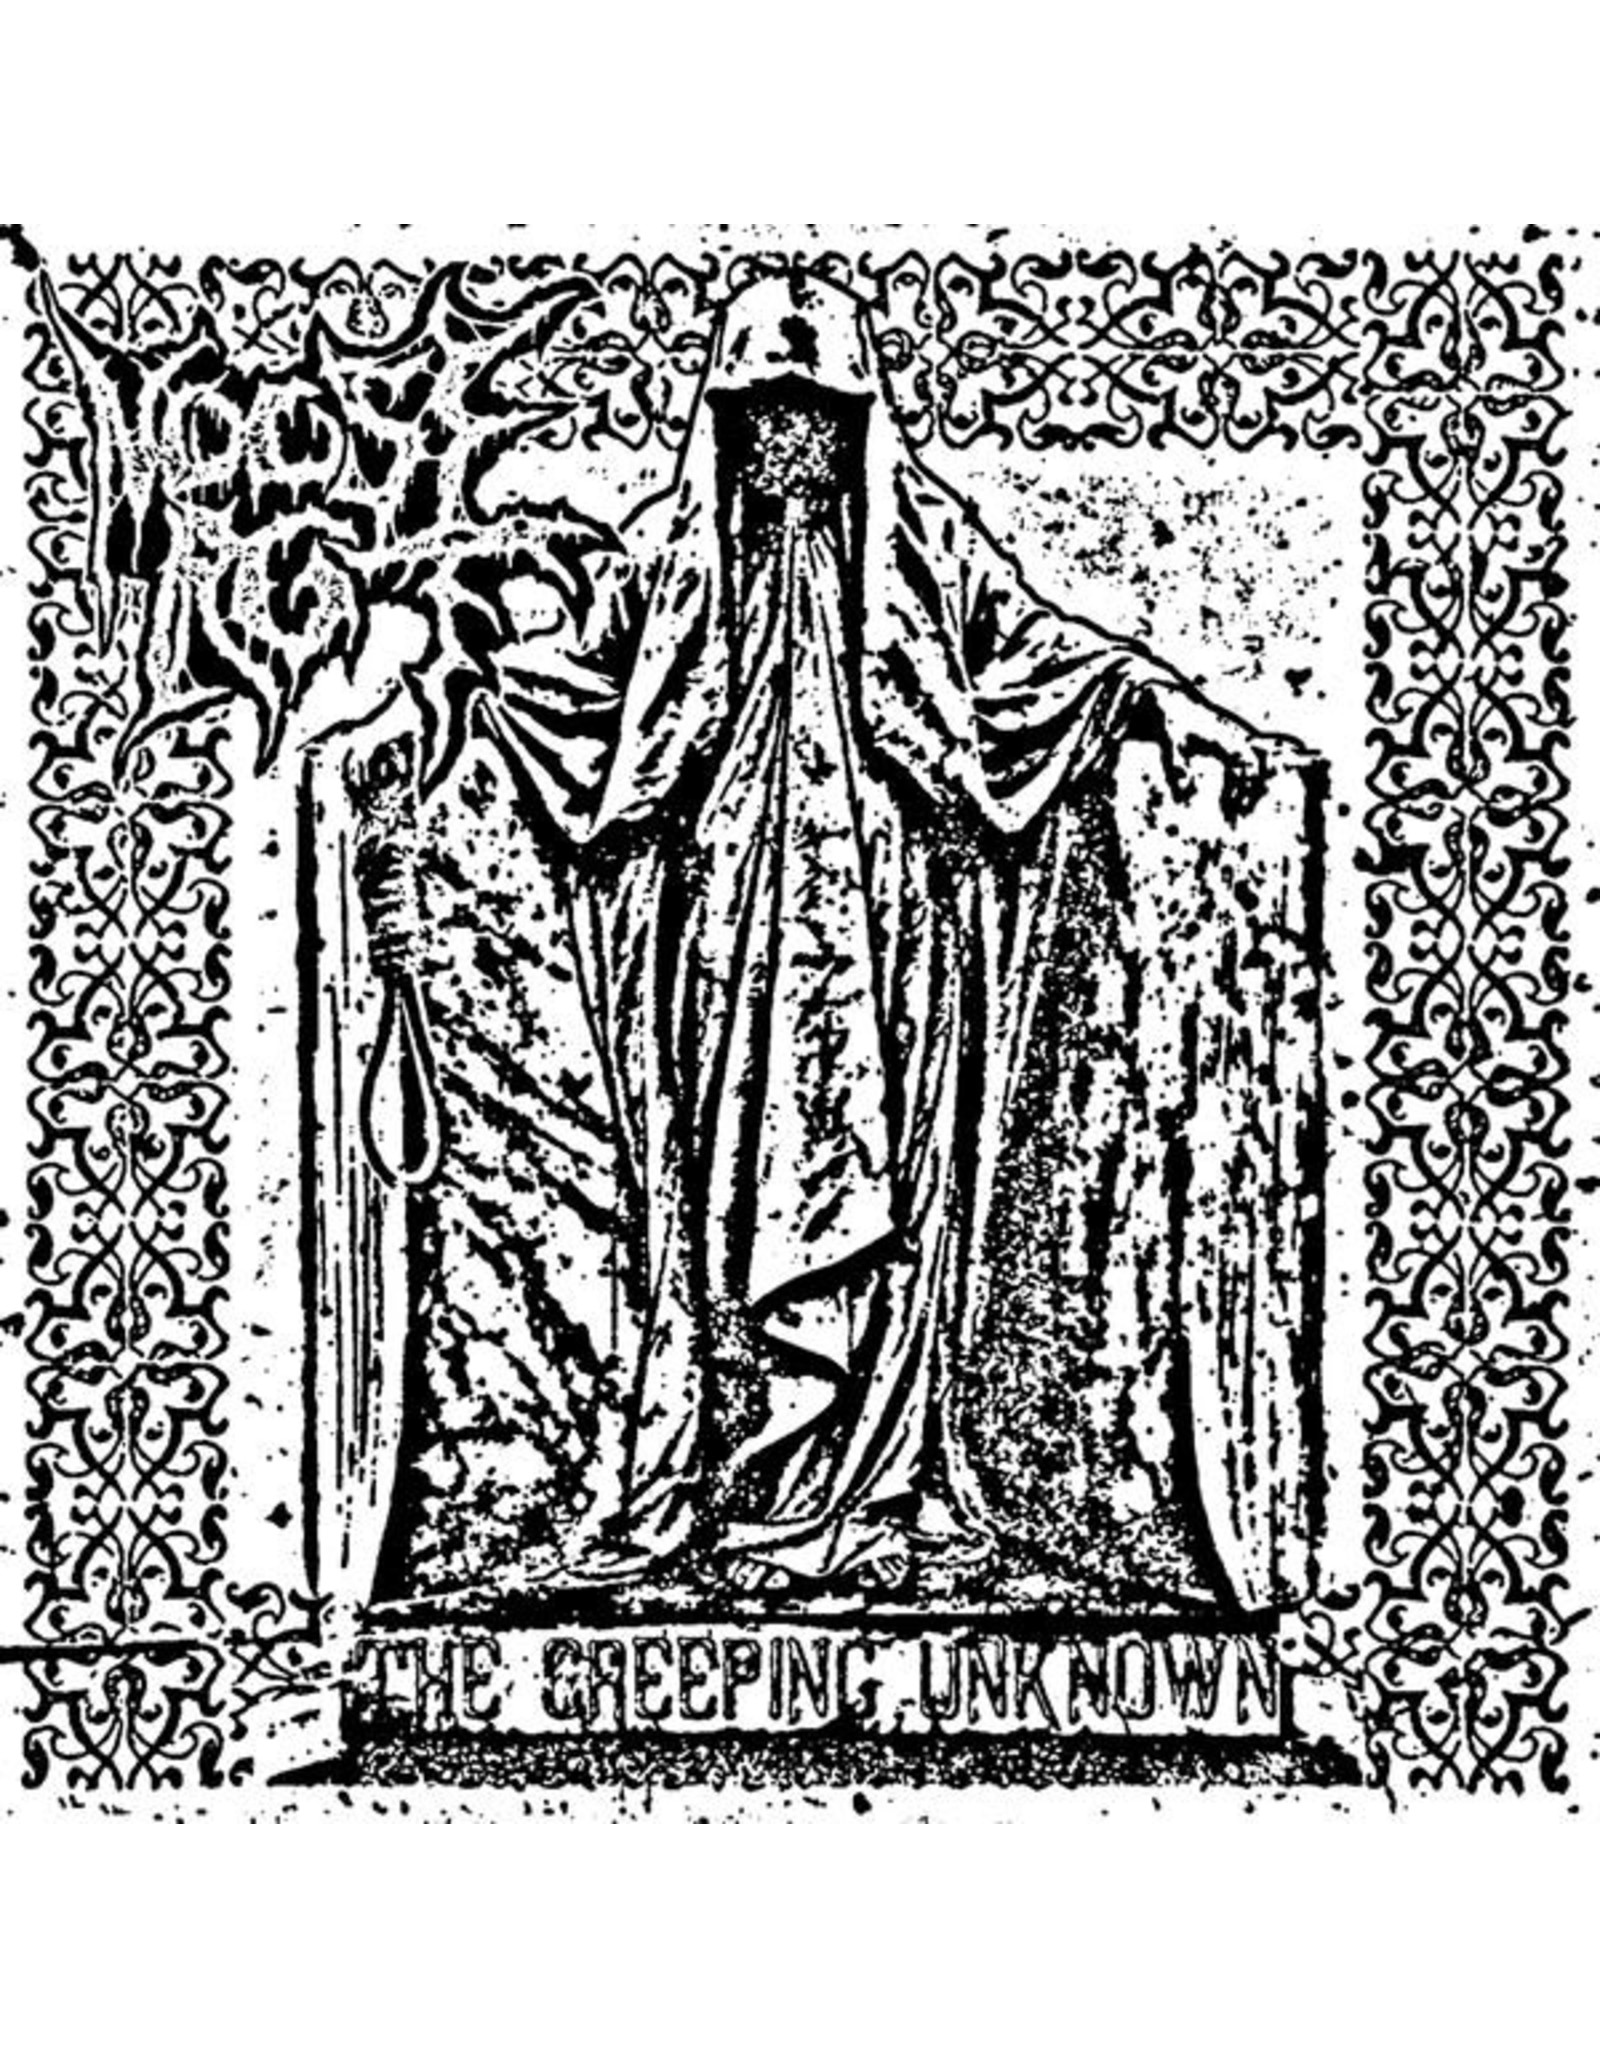 New Vinyl Noose Rot - The Creeping Unknown EP 12""